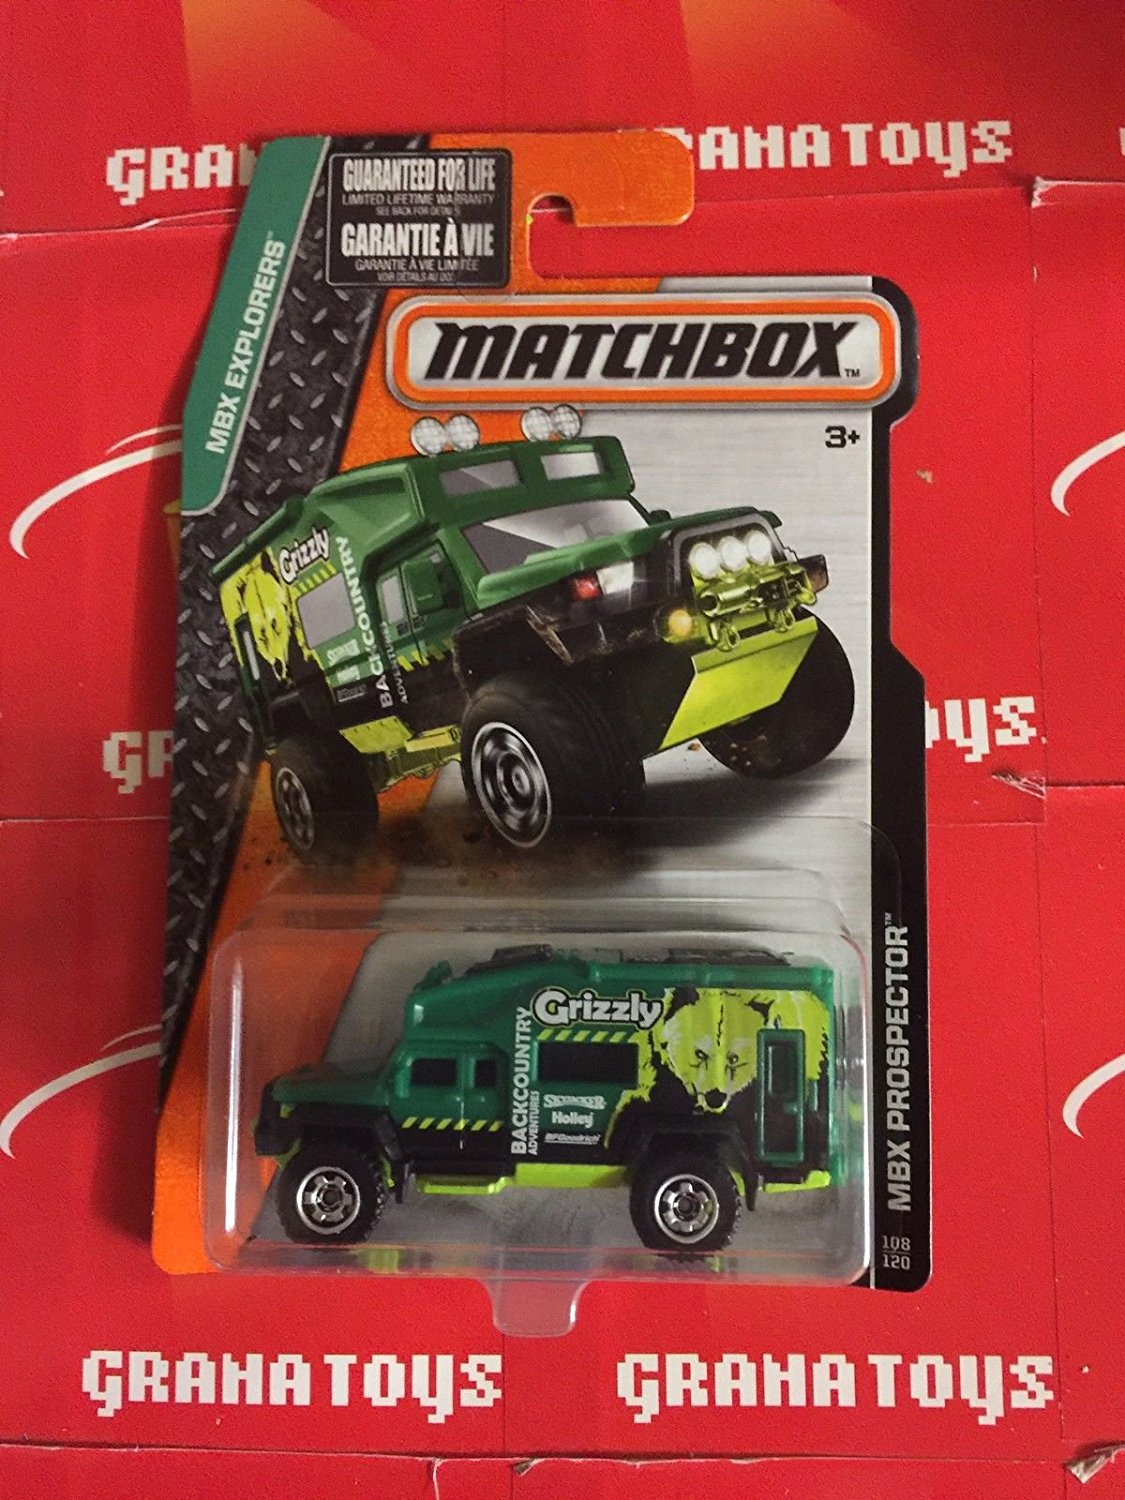 MBX Prospector Green 108 2015 Matchbox Case K By Qiyun From USA by